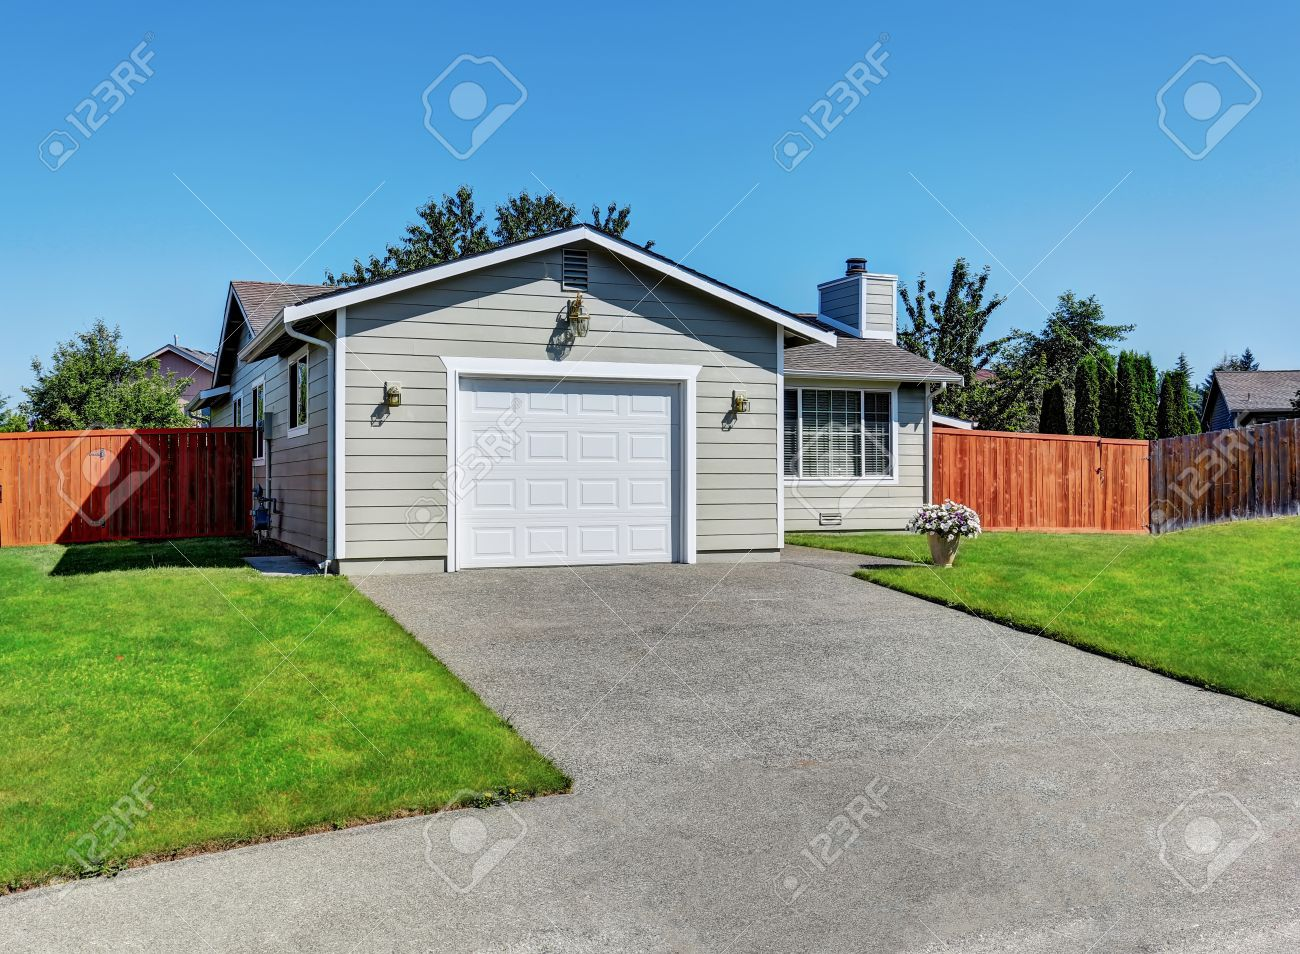 Exterior Of American One Level Rambler House With White Garage Door And Red  Fence. Northwest